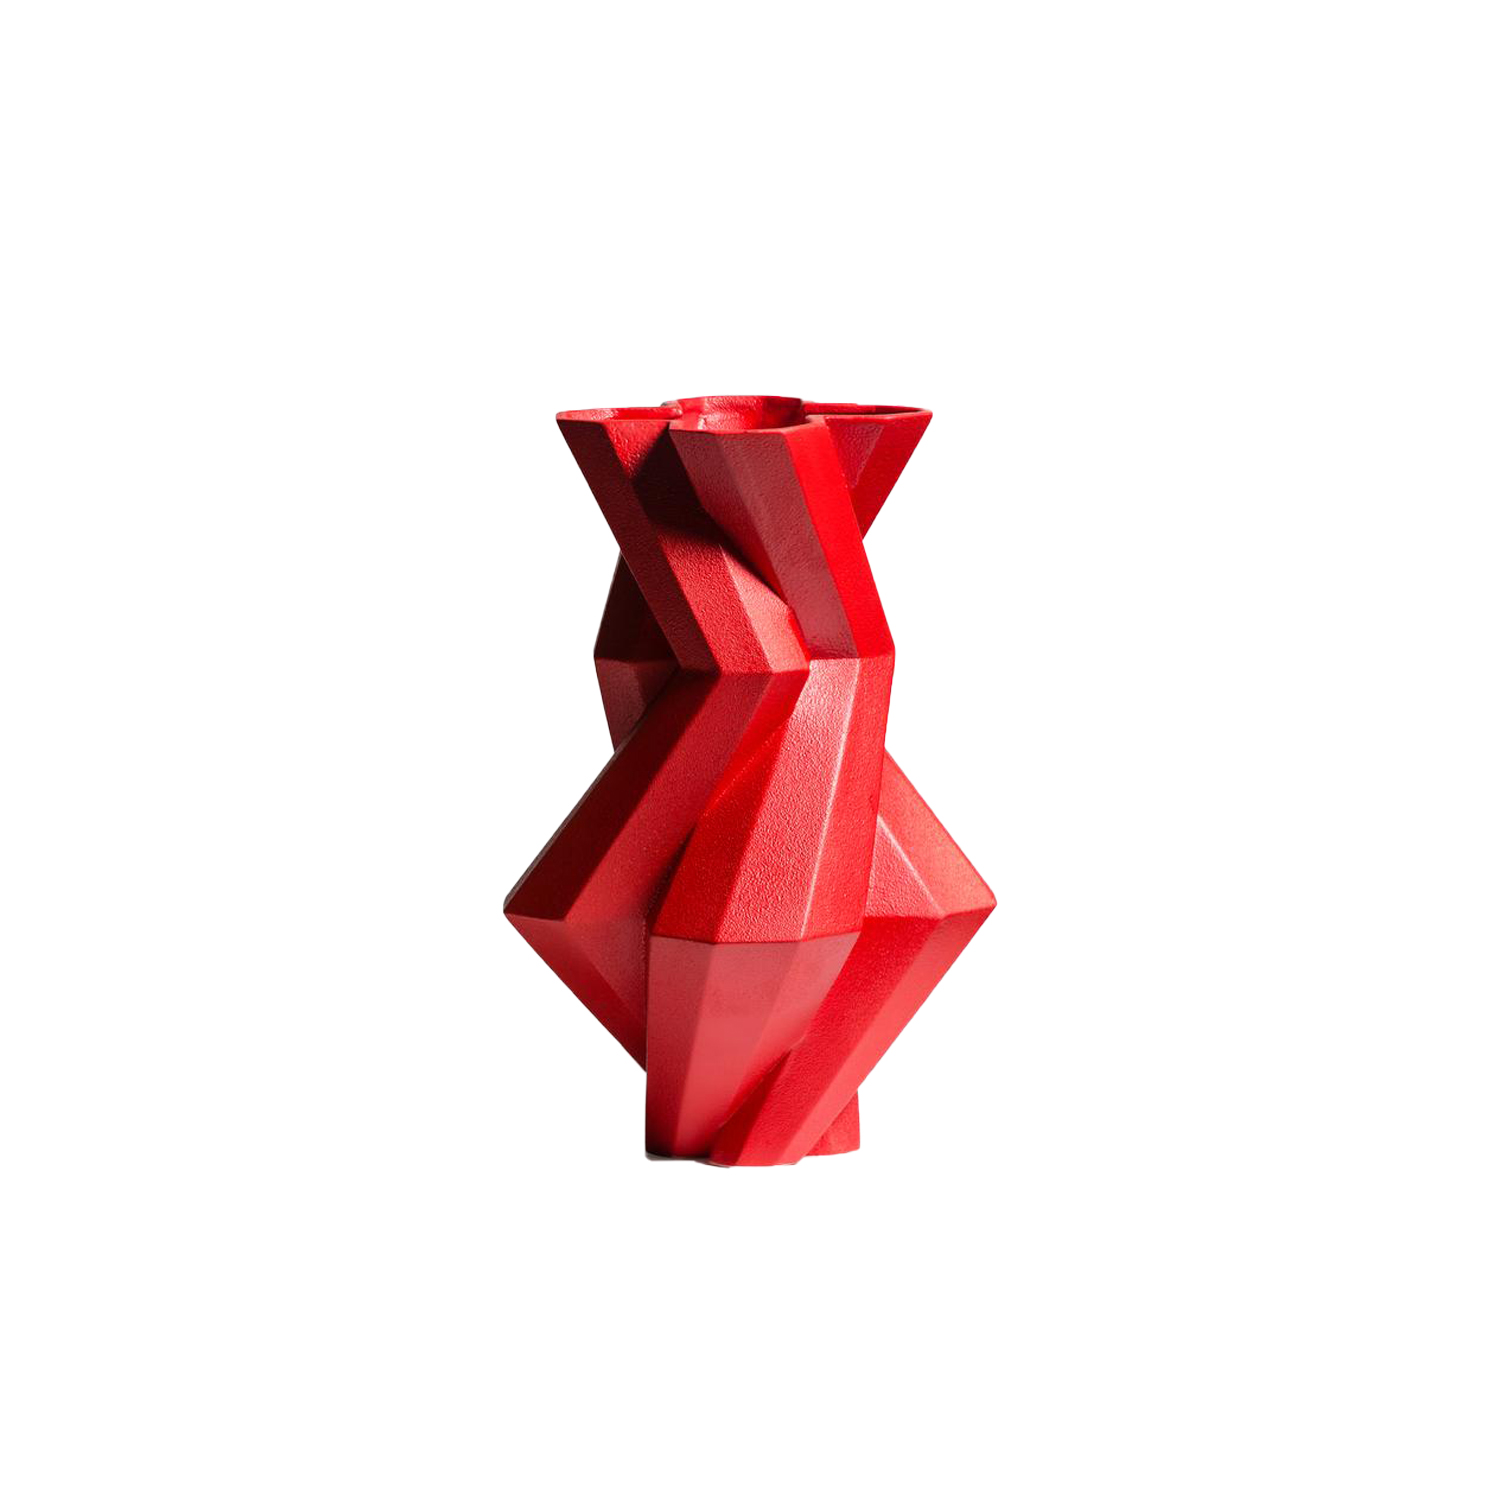 Fortress Castle Vase Red - Designer Lara Bohinc explores the marriage of ancient and futuristic form in the new Fortress Vase range, which has created a more complex geometric and modern structure from the original inspiration of the octagonal towers at the Diocletian Palace in Croatia. The resulting hexagonal blocks interlock and embrace to allow the play of light and shade on the many surfaces and angles. There are four Fortress shapes: the larger Column and Castle (45cm height), the Pillar (30cm height) and the Tower vase (37cm height). These are hand made from ceramic in a small Italian artisanal workshop and come in three finishes: dark gold, bronze and speckled white.  | Matter of Stuff